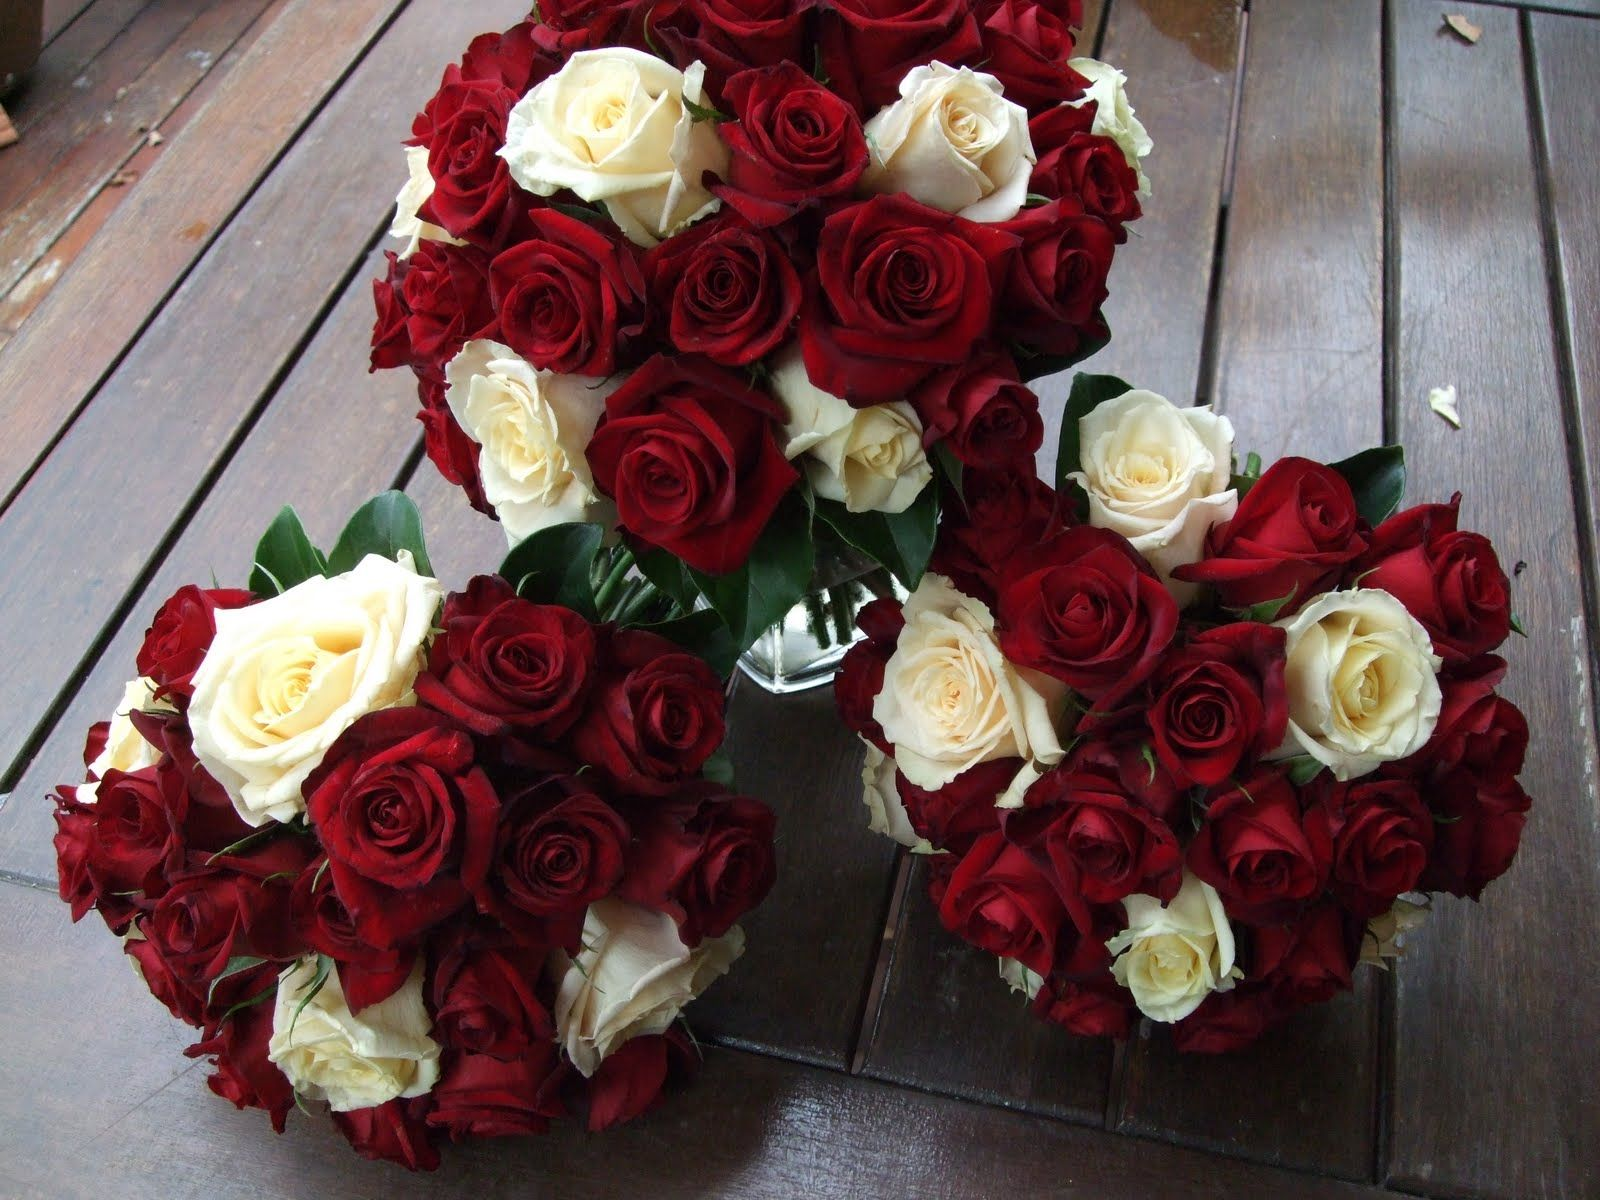 Wedding bouquets red and white roses  Bridesmaidus bouquets  Fluèr  Pinterest  Wedding and Weddings